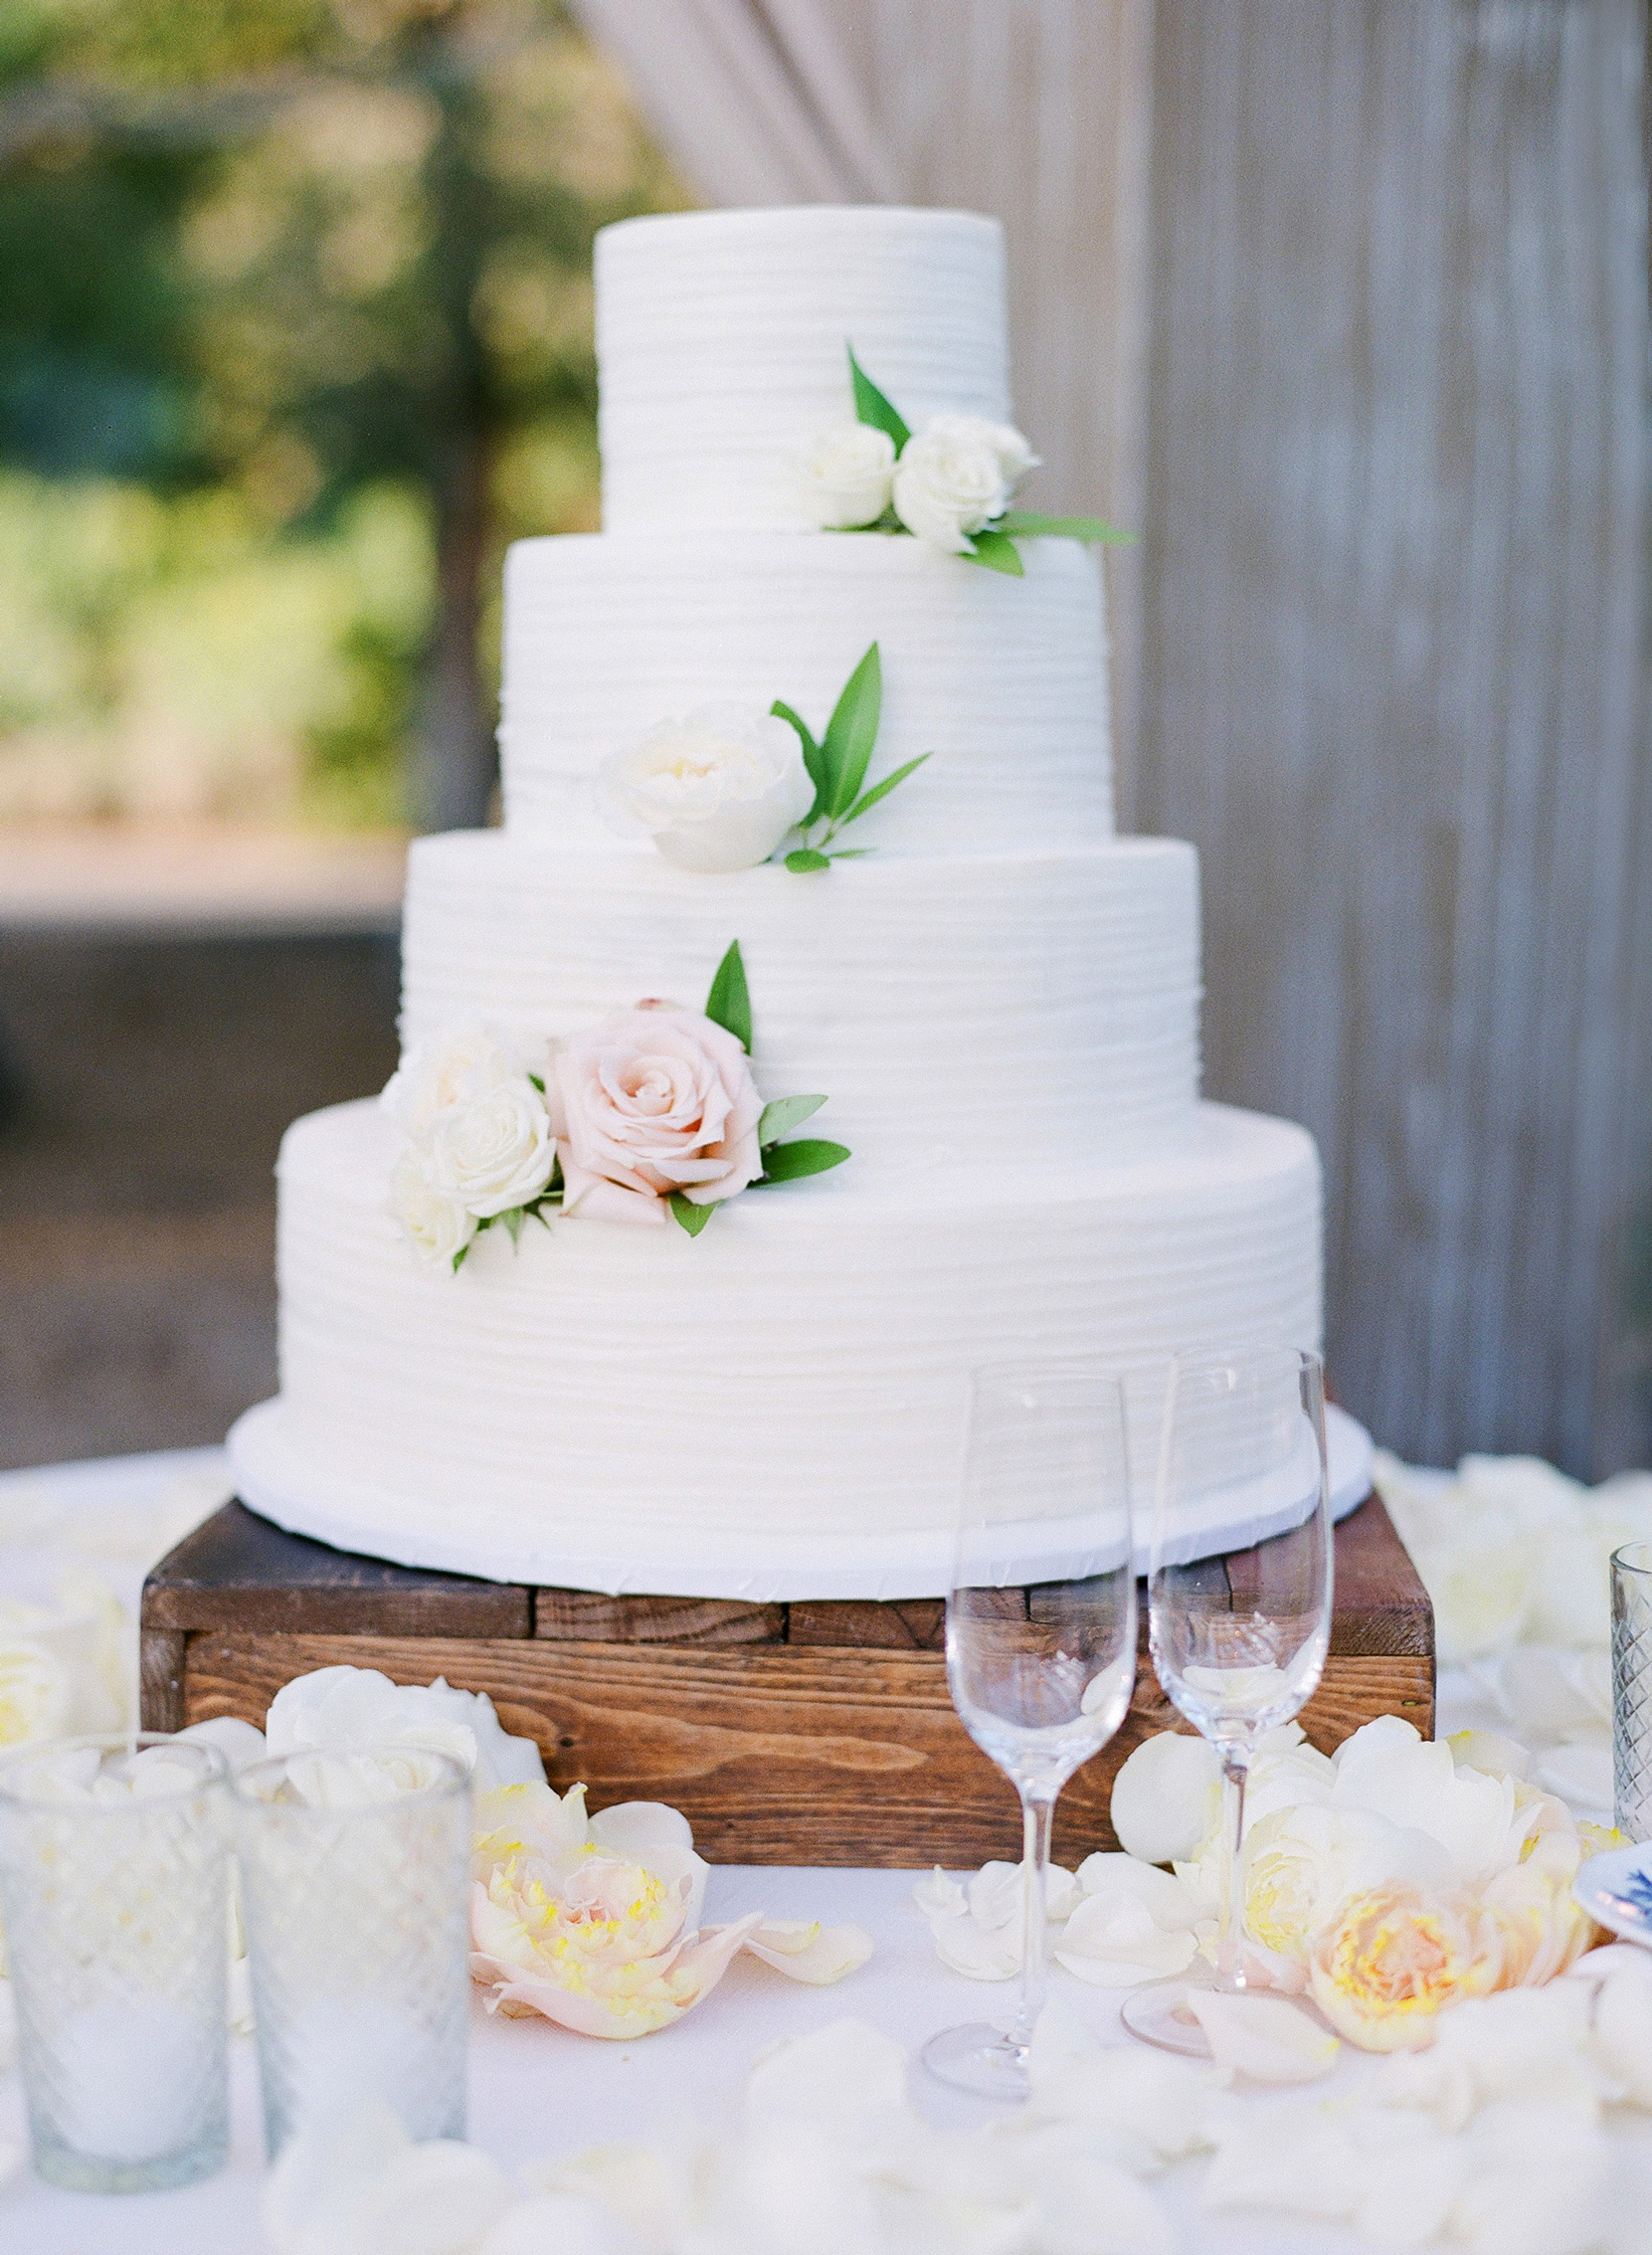 4-tier white wedding cake decorated with a few roses